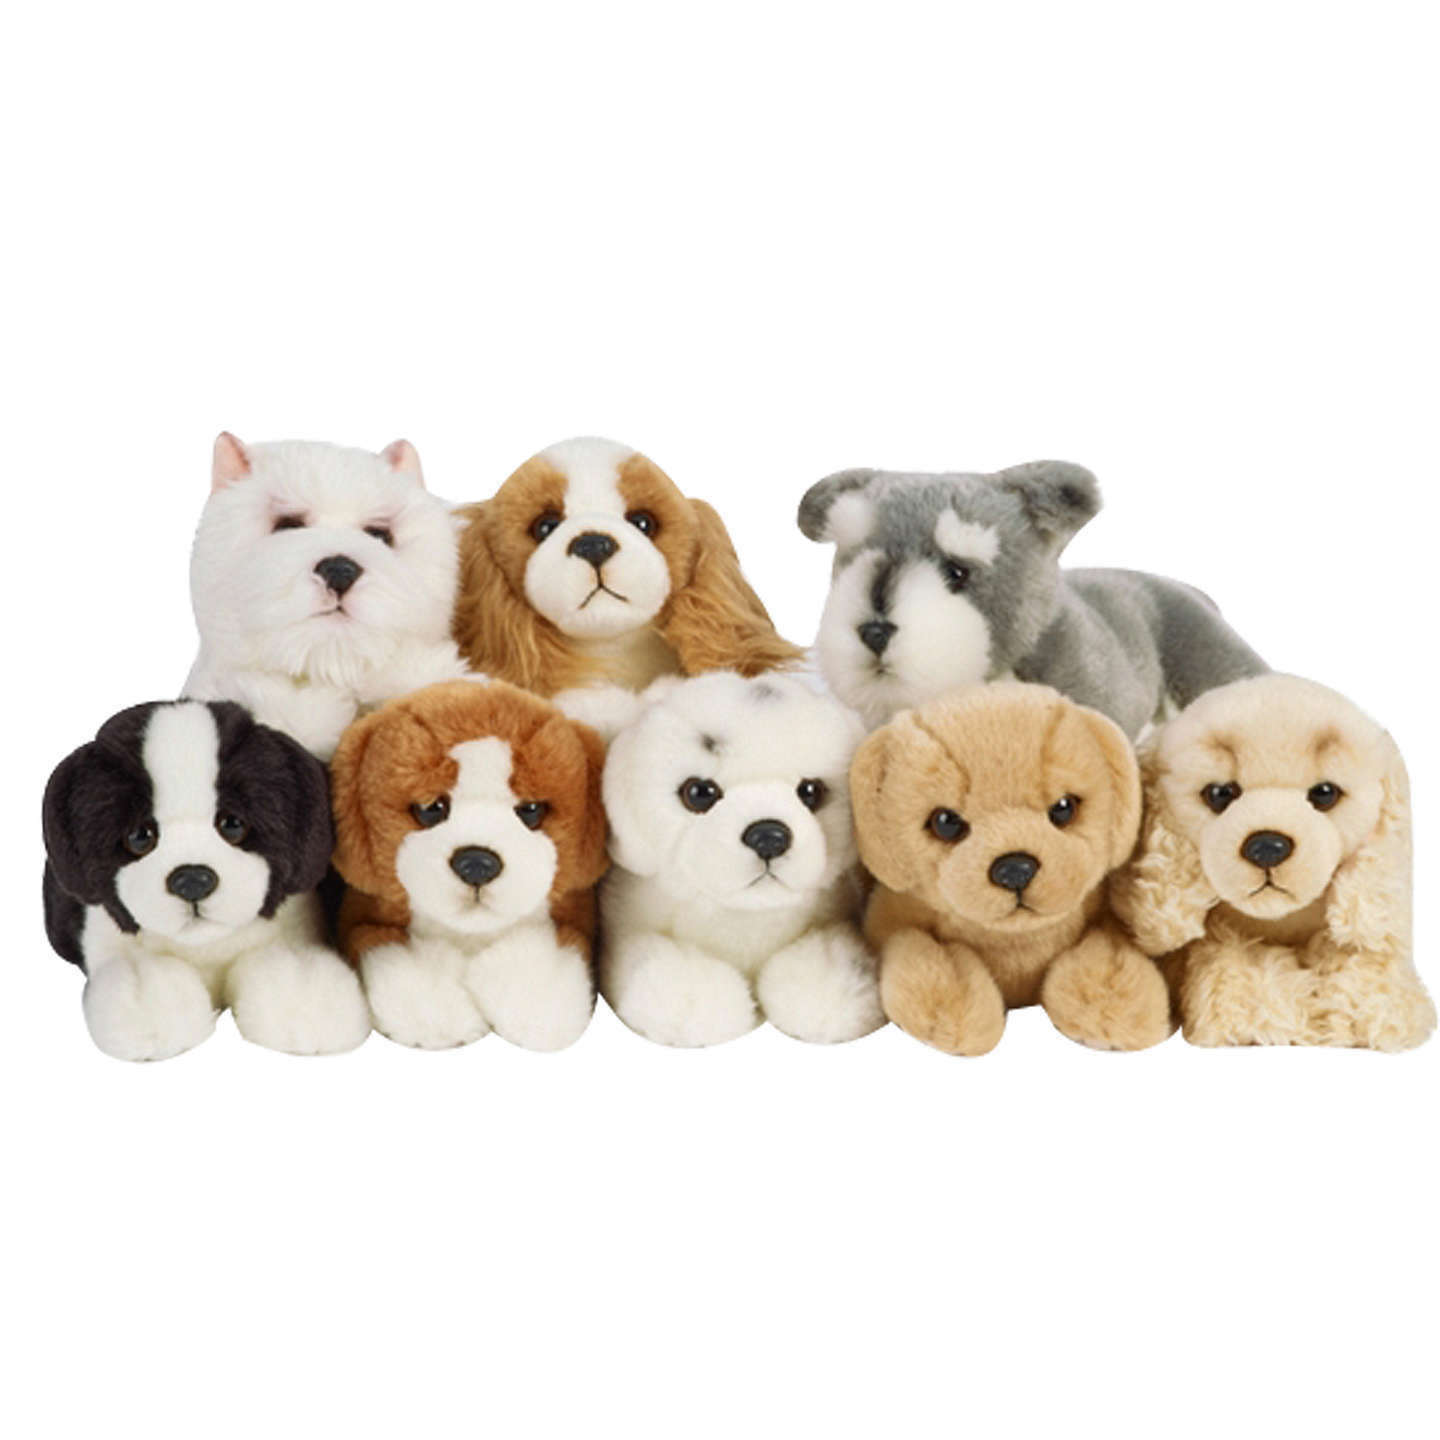 LIVING NATURE PUPPIES -AN152AS PLUSH COLLIE KING CHARLES WESTIE BEAGLE DOGS SOFT